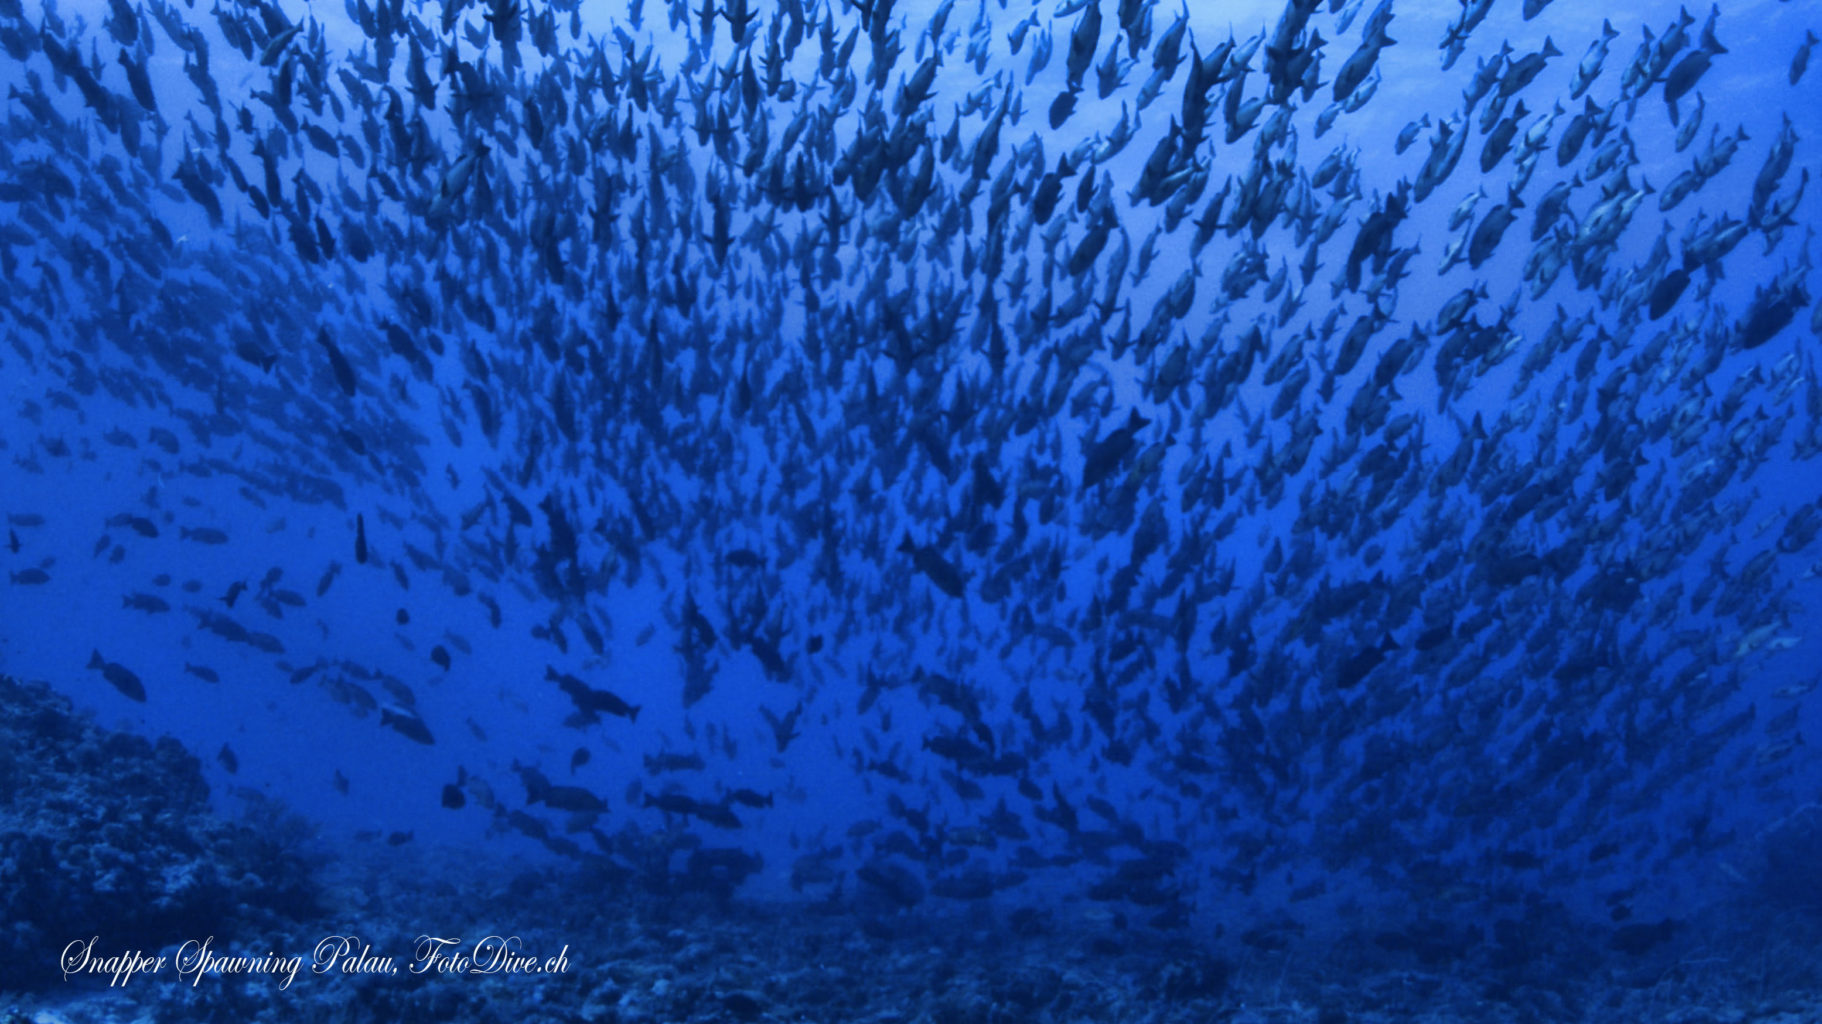 Snapper Spawning Palau